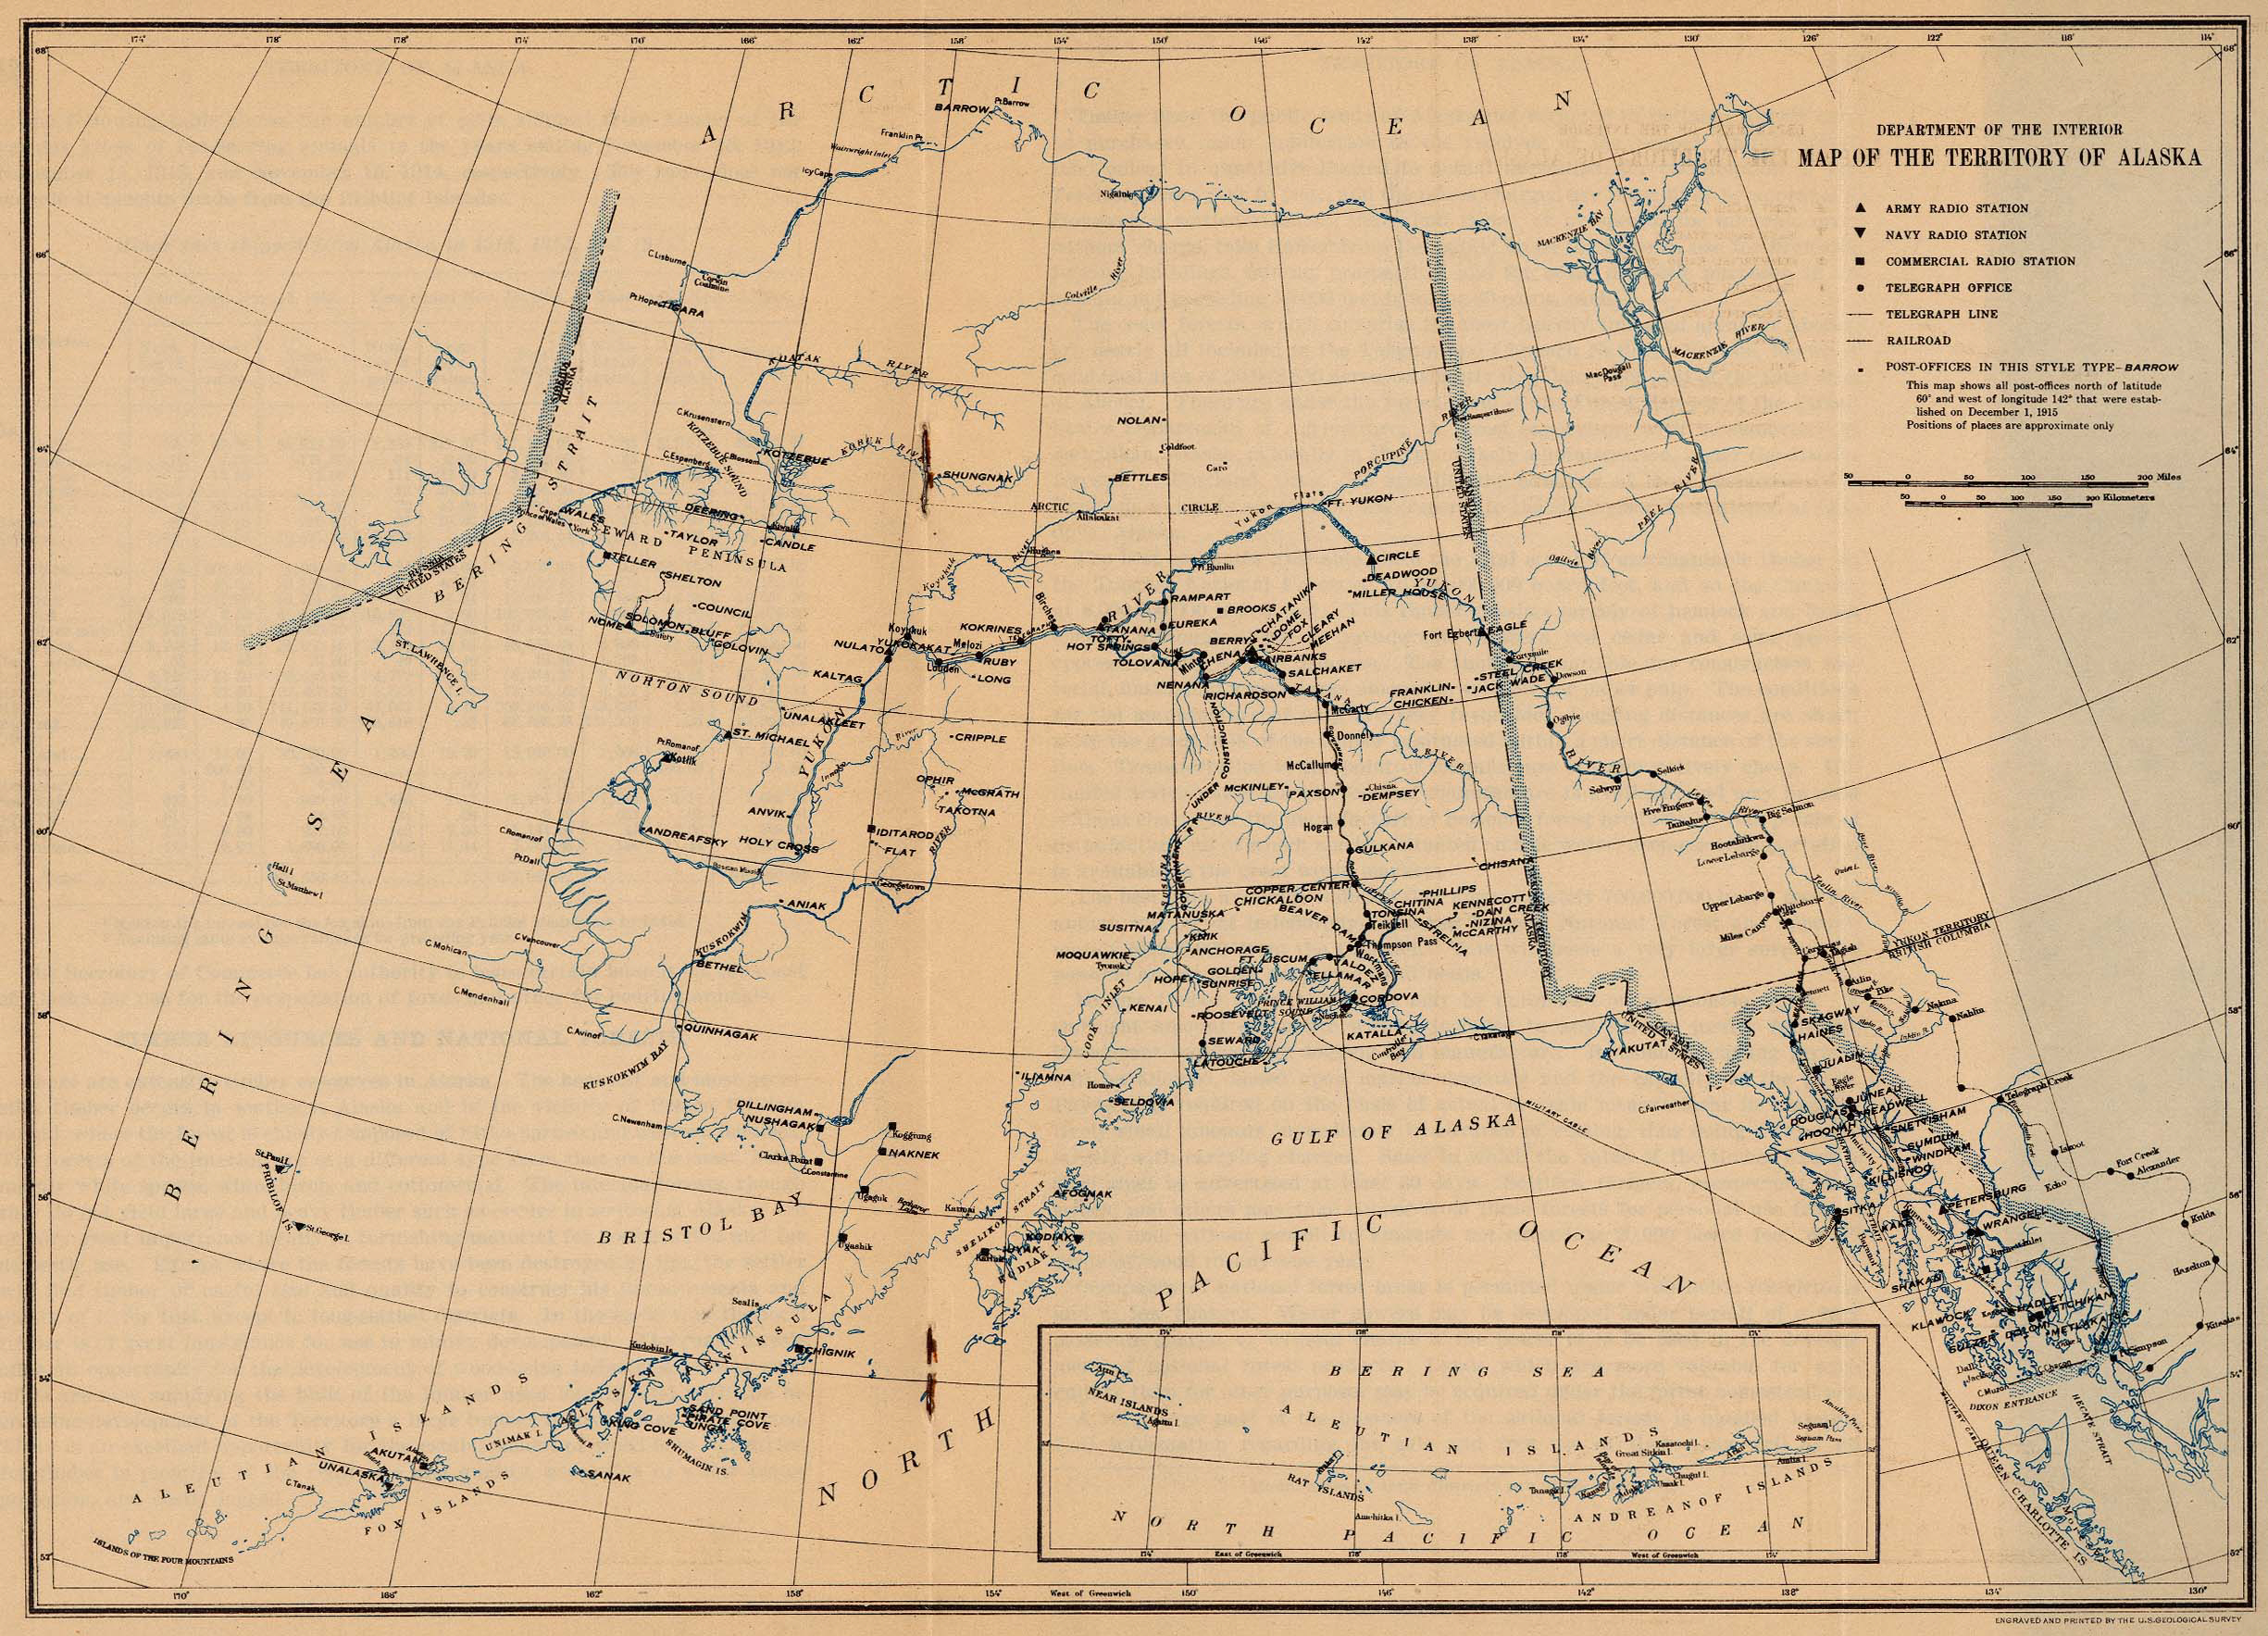 1915 us department of the interior map showing army navy radio stations telegraph offices railroads and post offices